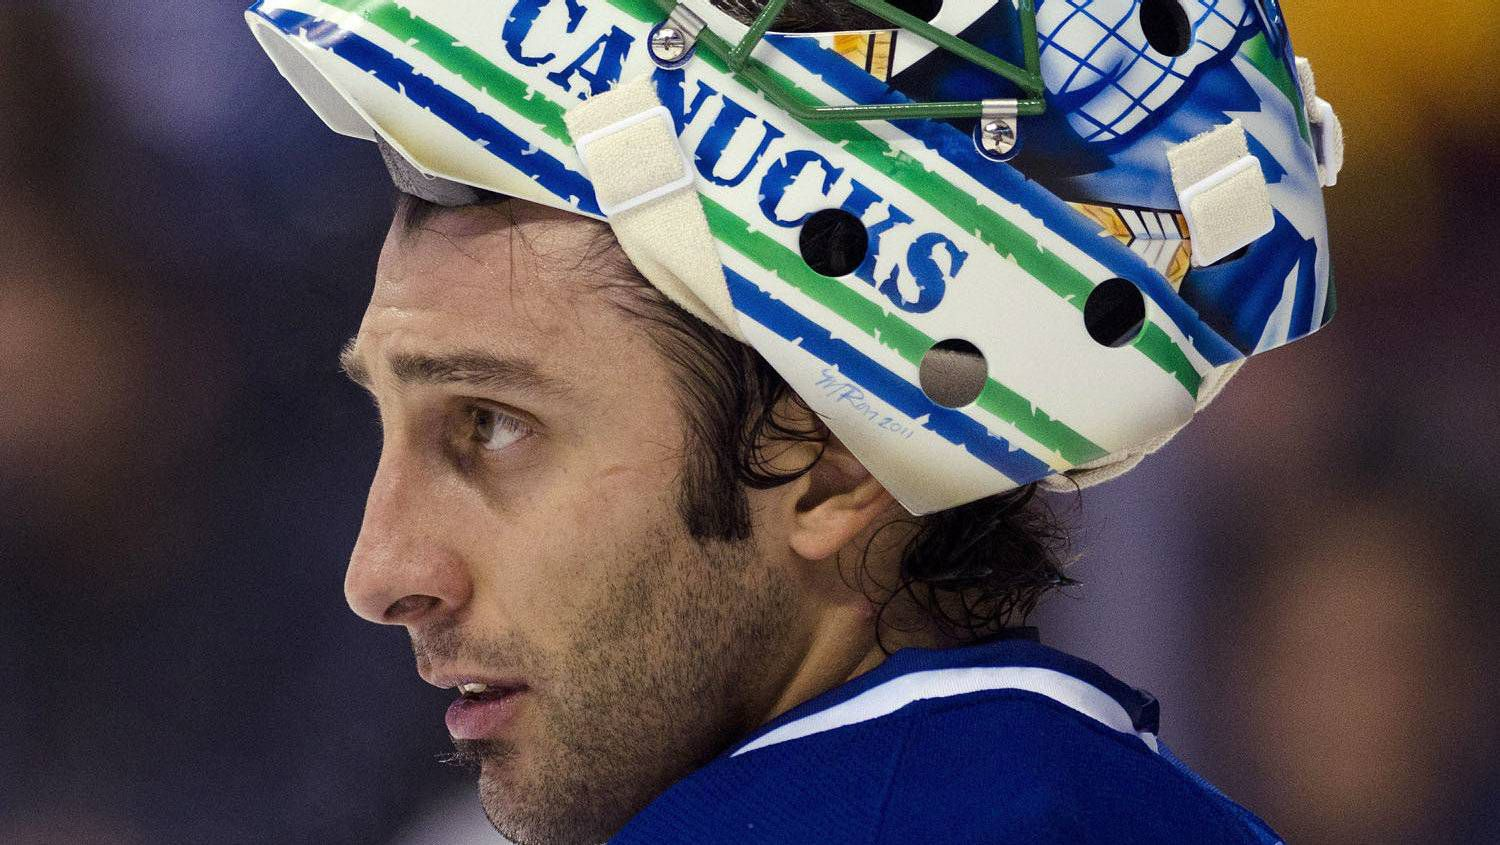 Roberto Luongo Looks To Rebound Against Caps The Globe And Mail